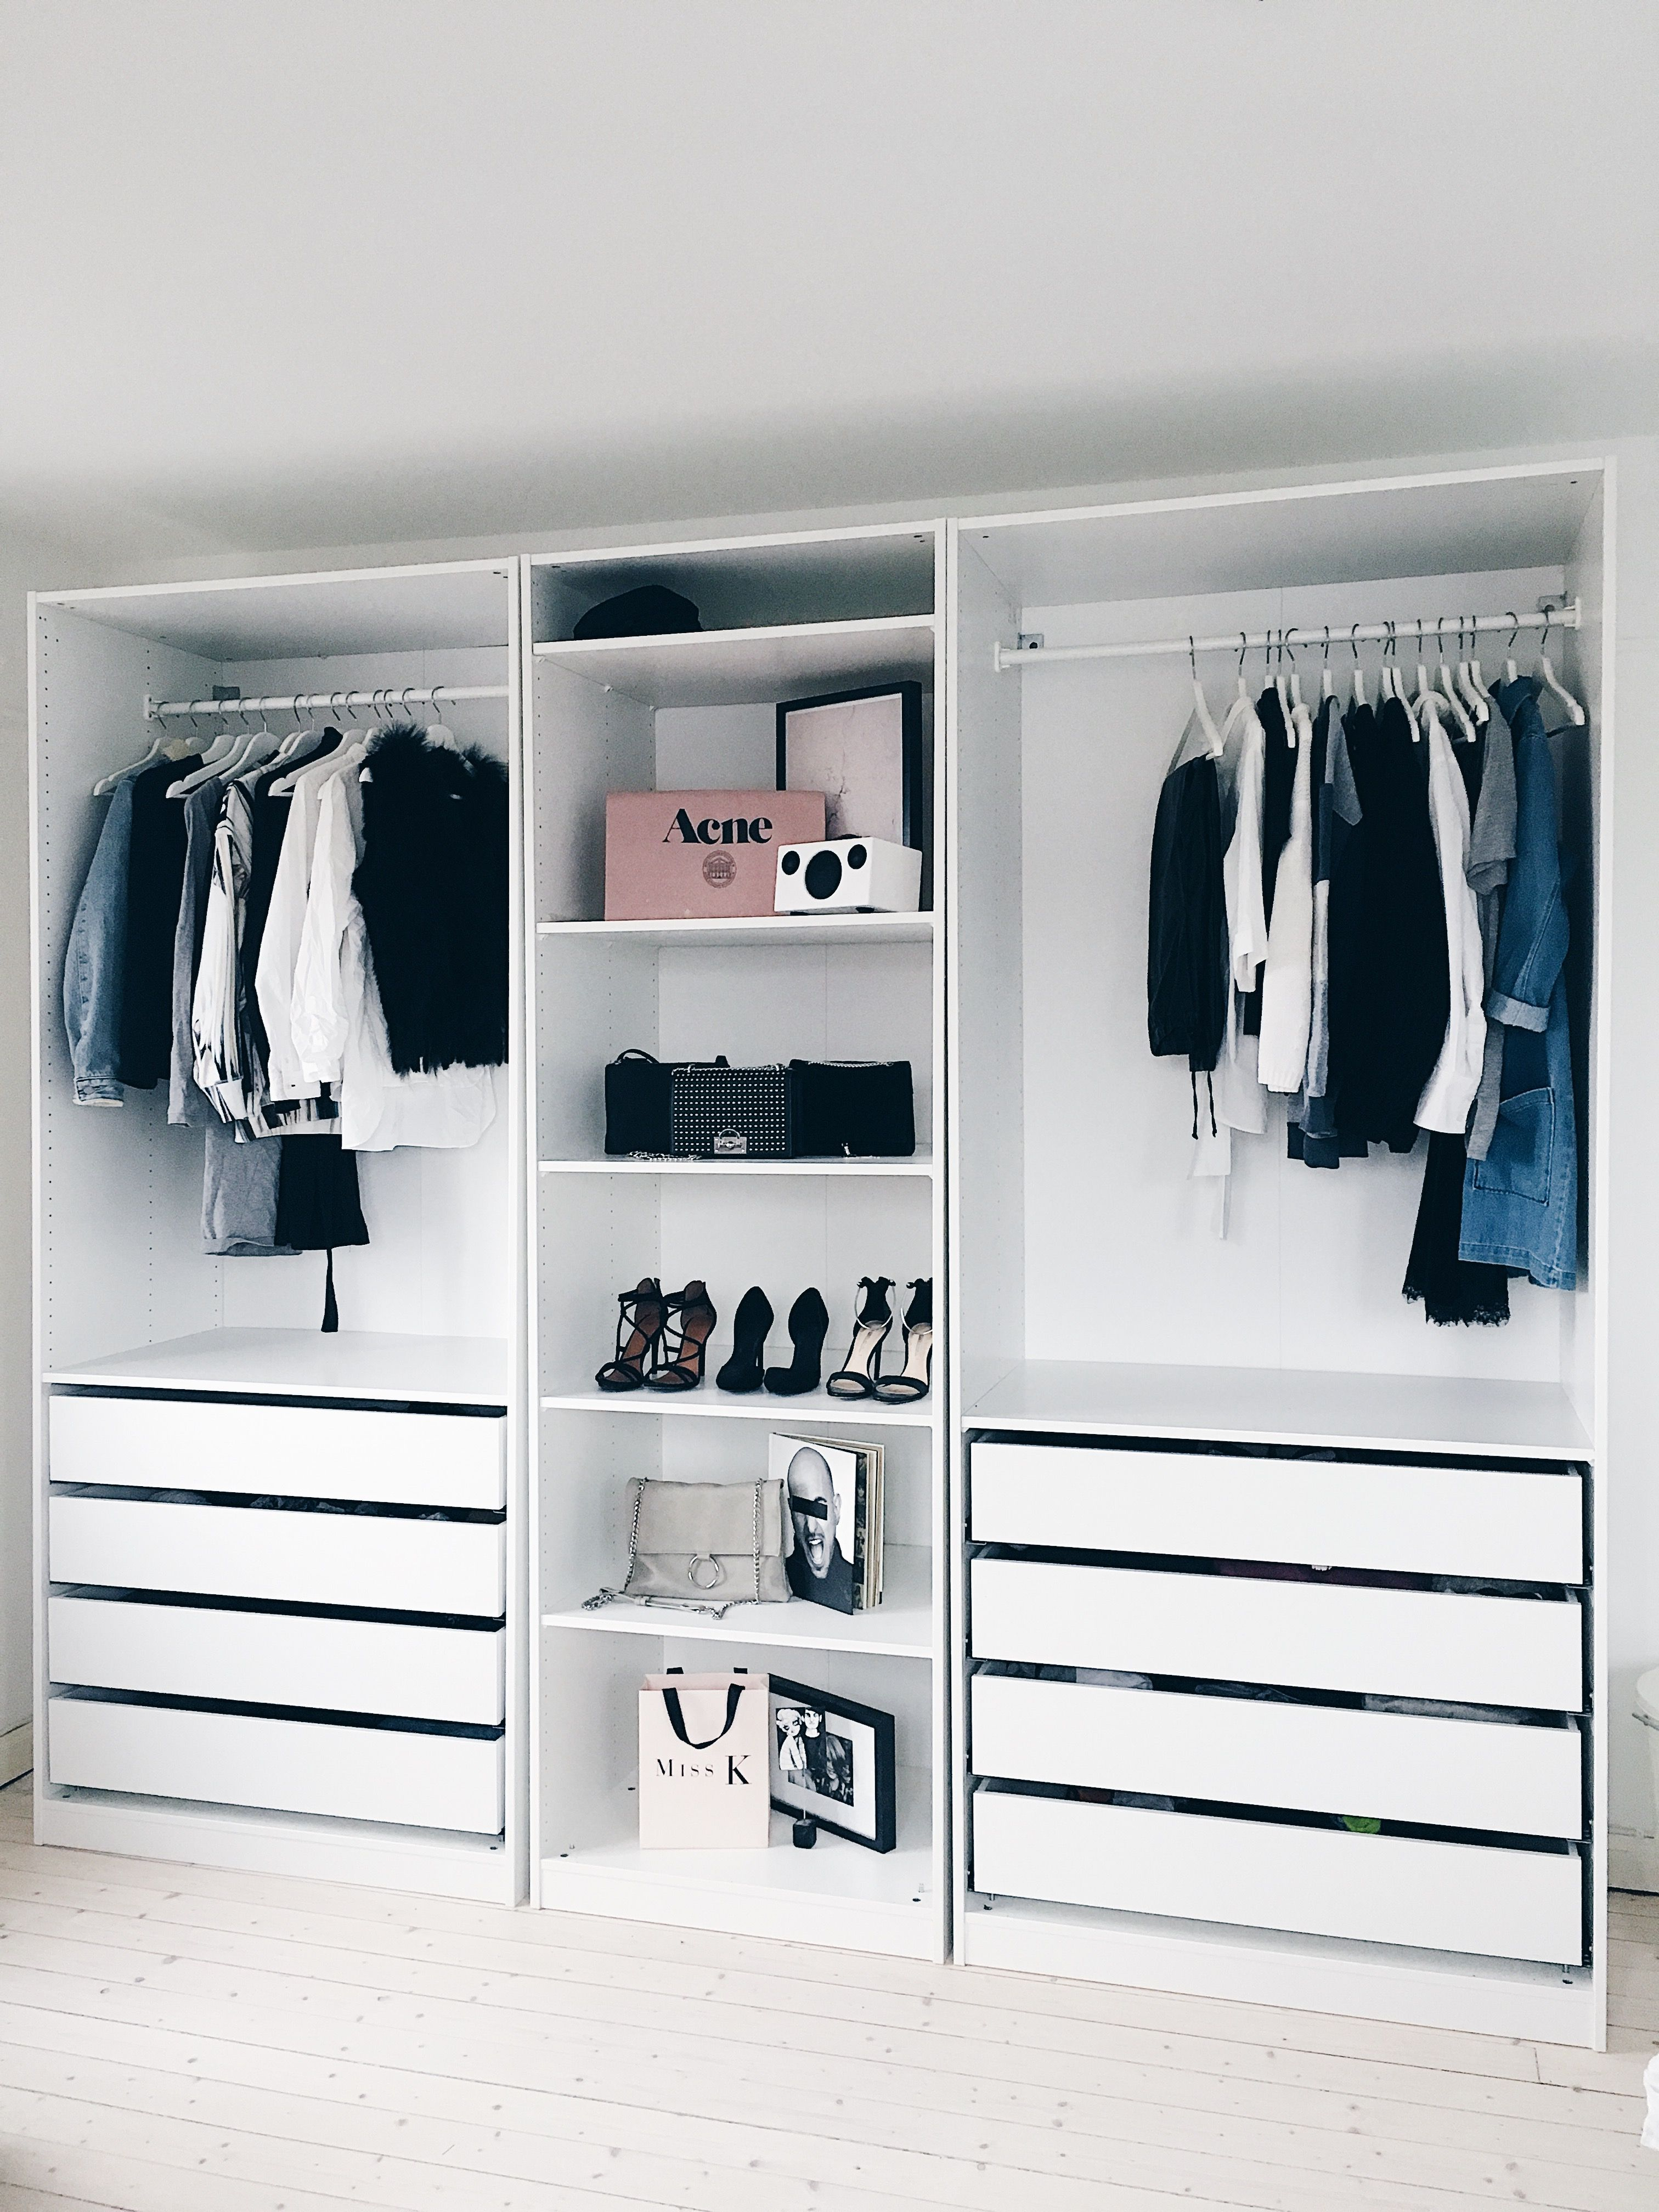 of perfect organizer organization vs in closet wire size reach bedroom kids full ideas system back laminate to